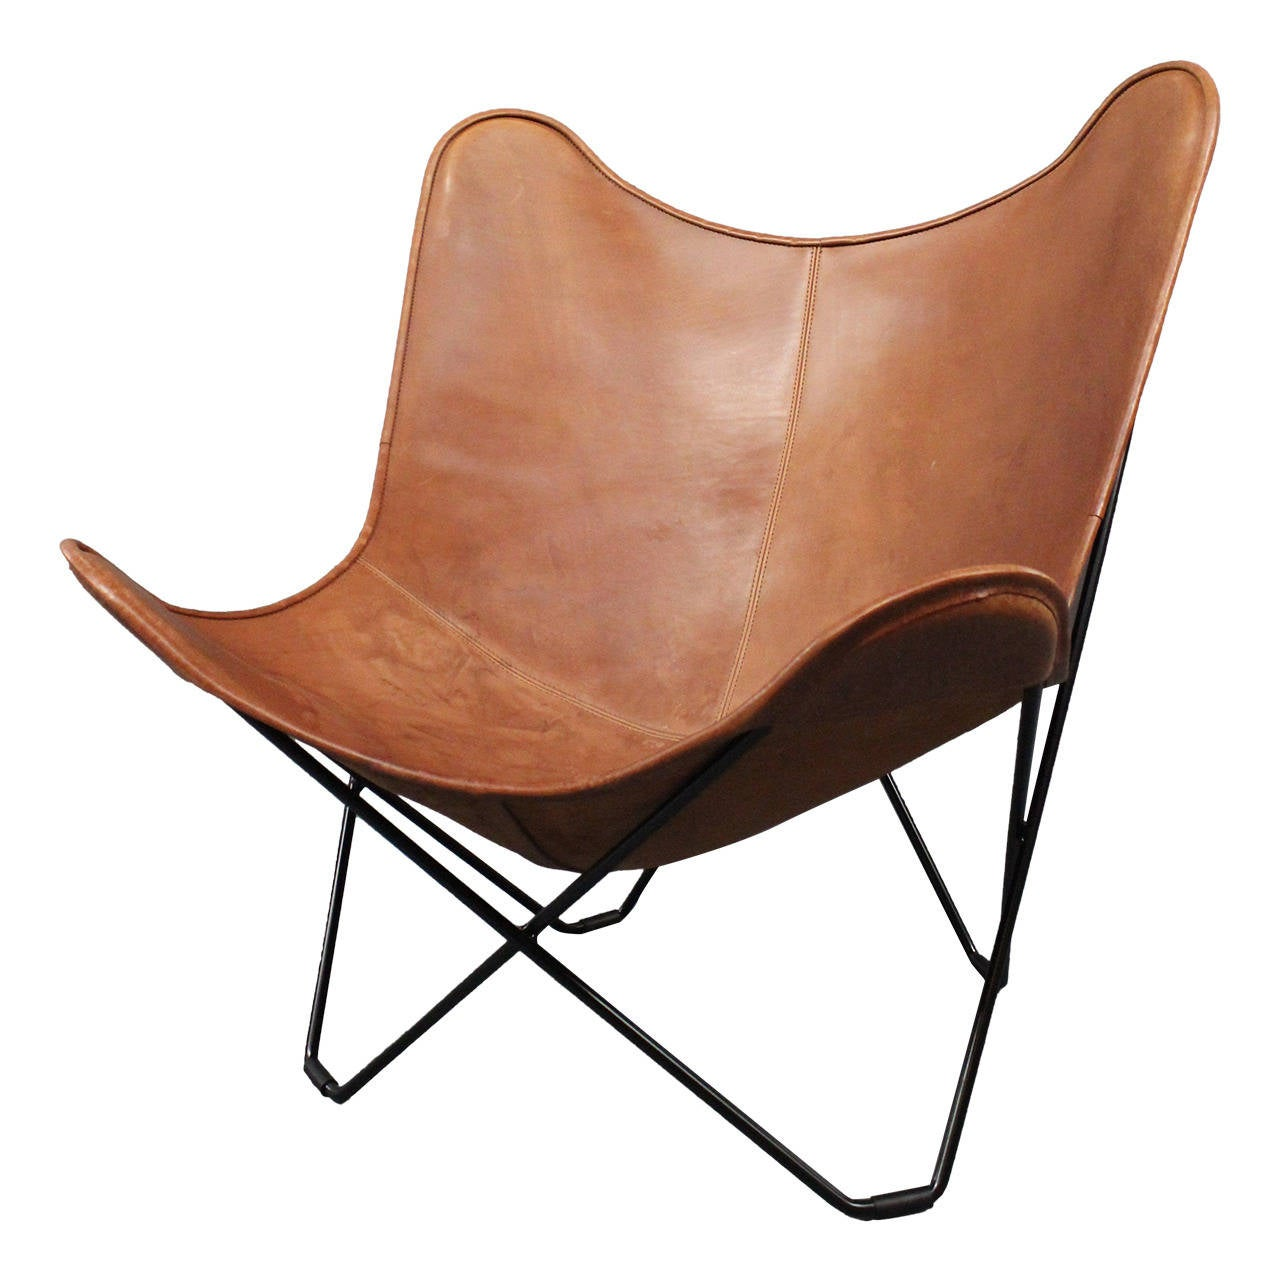 Butterfly Sessel Leather Quotbutterfly Quot Chair Designed By Jorge Ferrari Hardoy